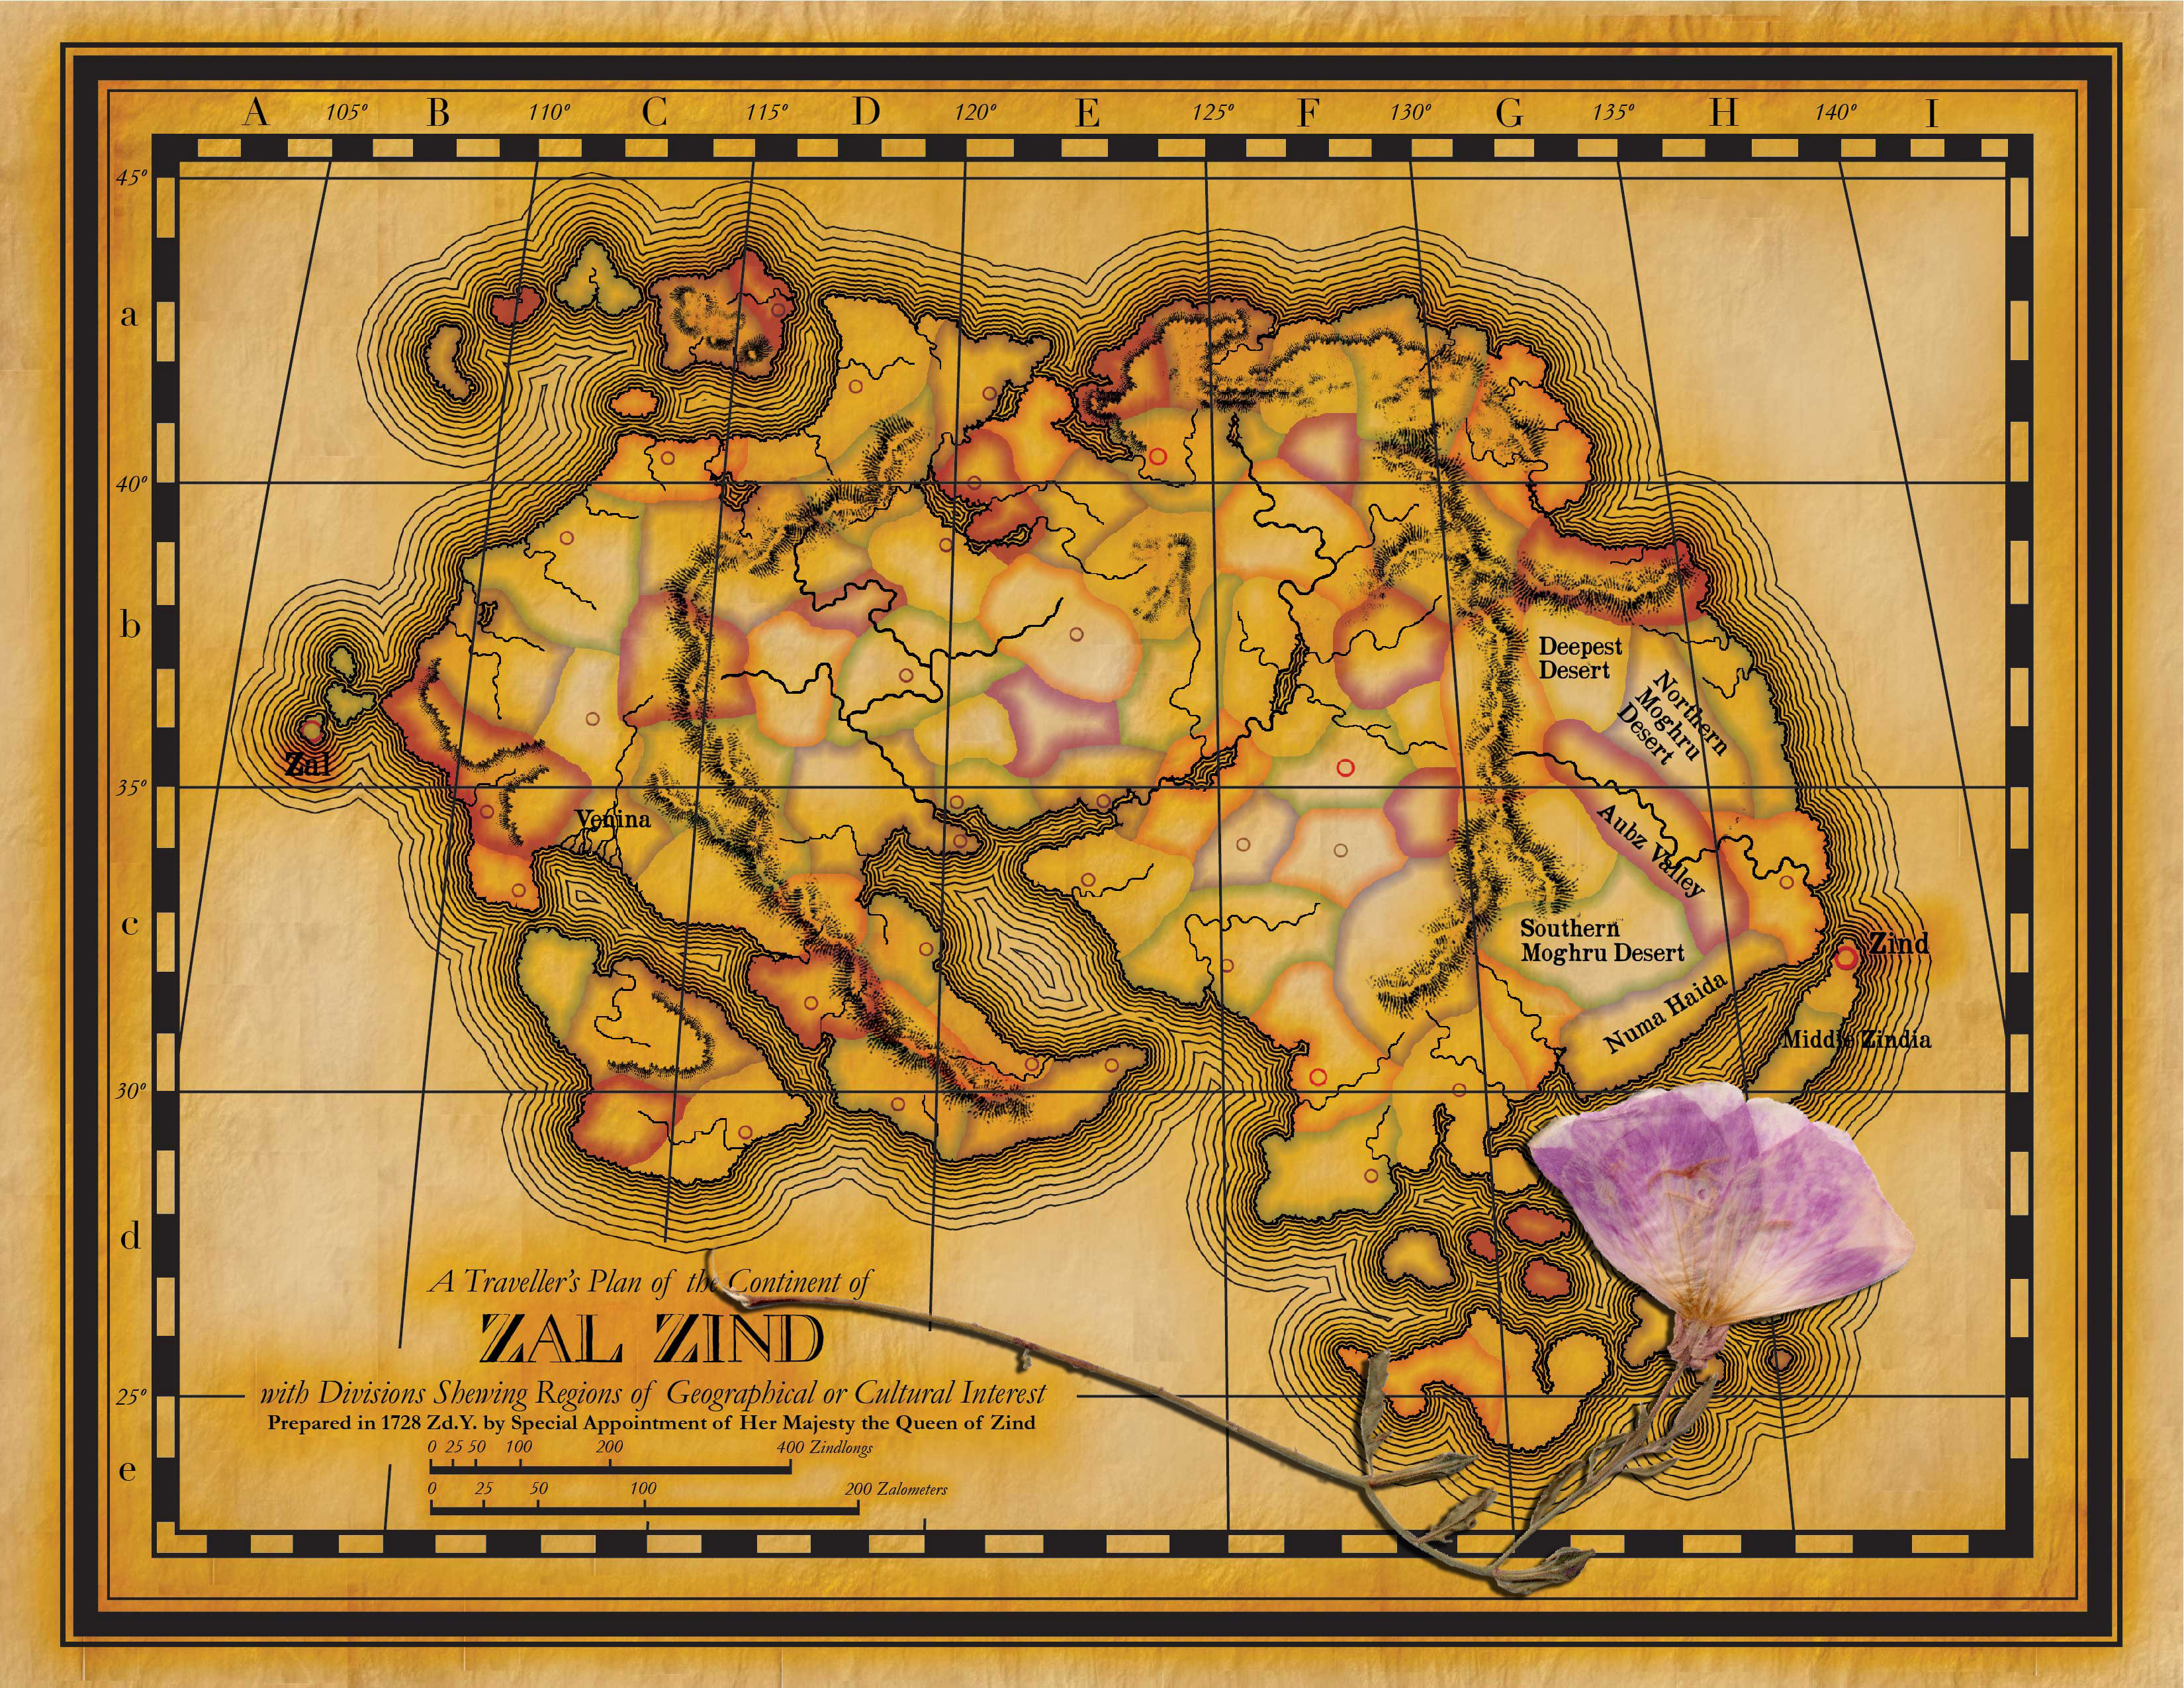 Once I thought of it, I couldn't resist Photoshopping a pressed flower on top of this mid-19th century style map (notwithstanding that it's not finished yet).